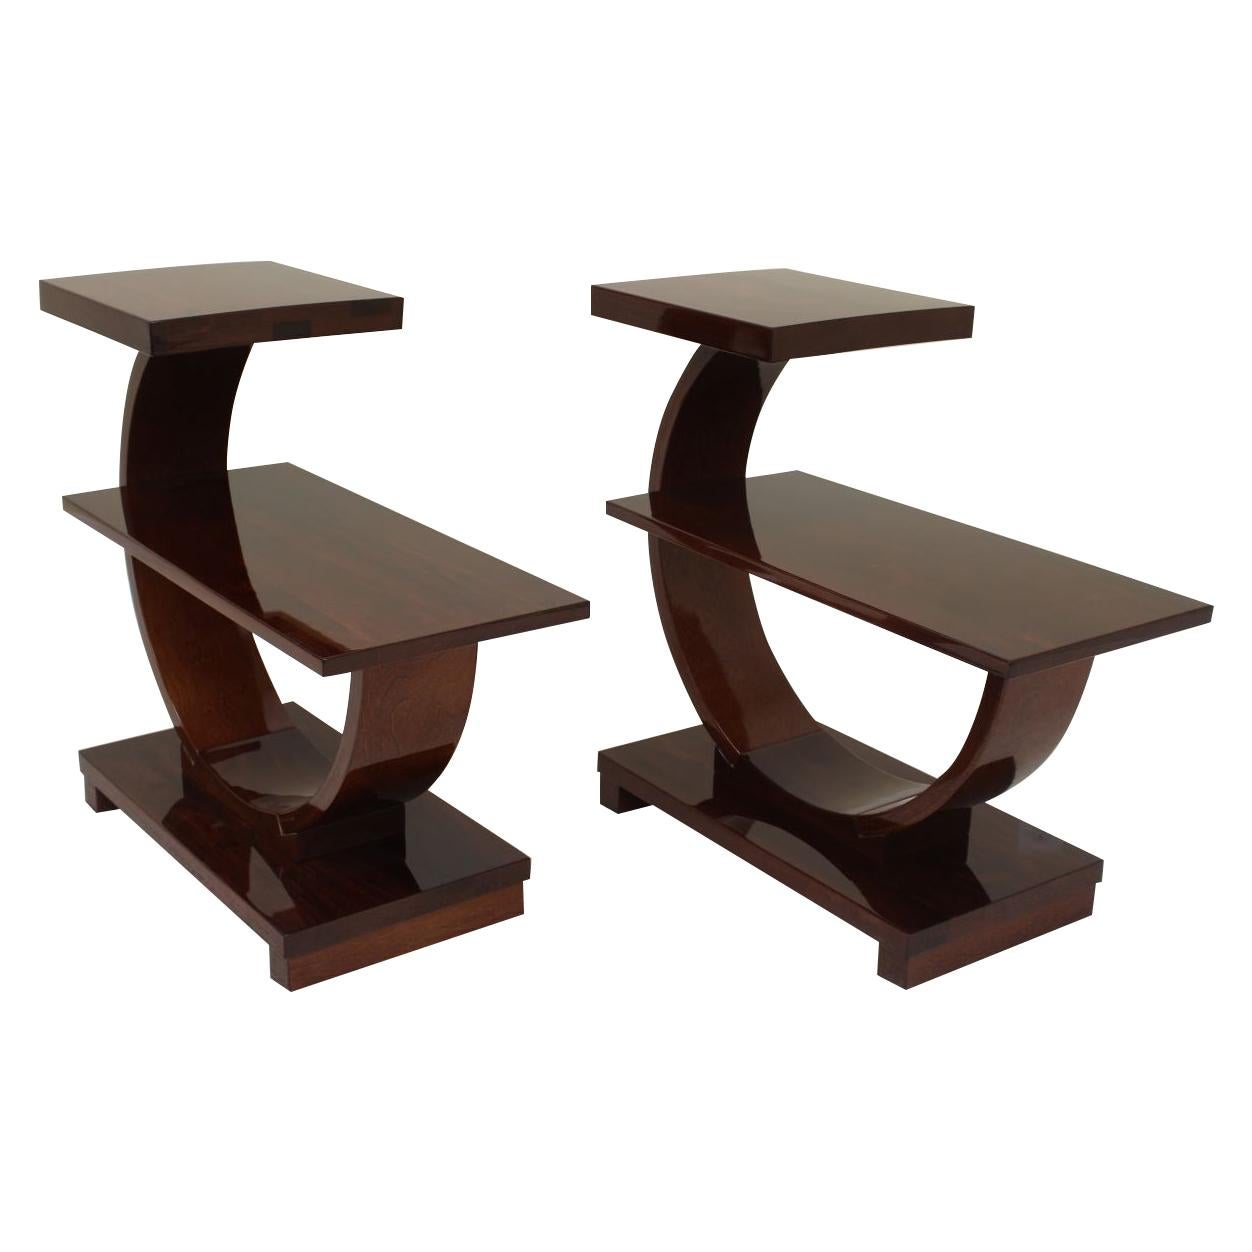 Pair of Machine Age Art Deco Curving End Tables by Modernage Furniture Company